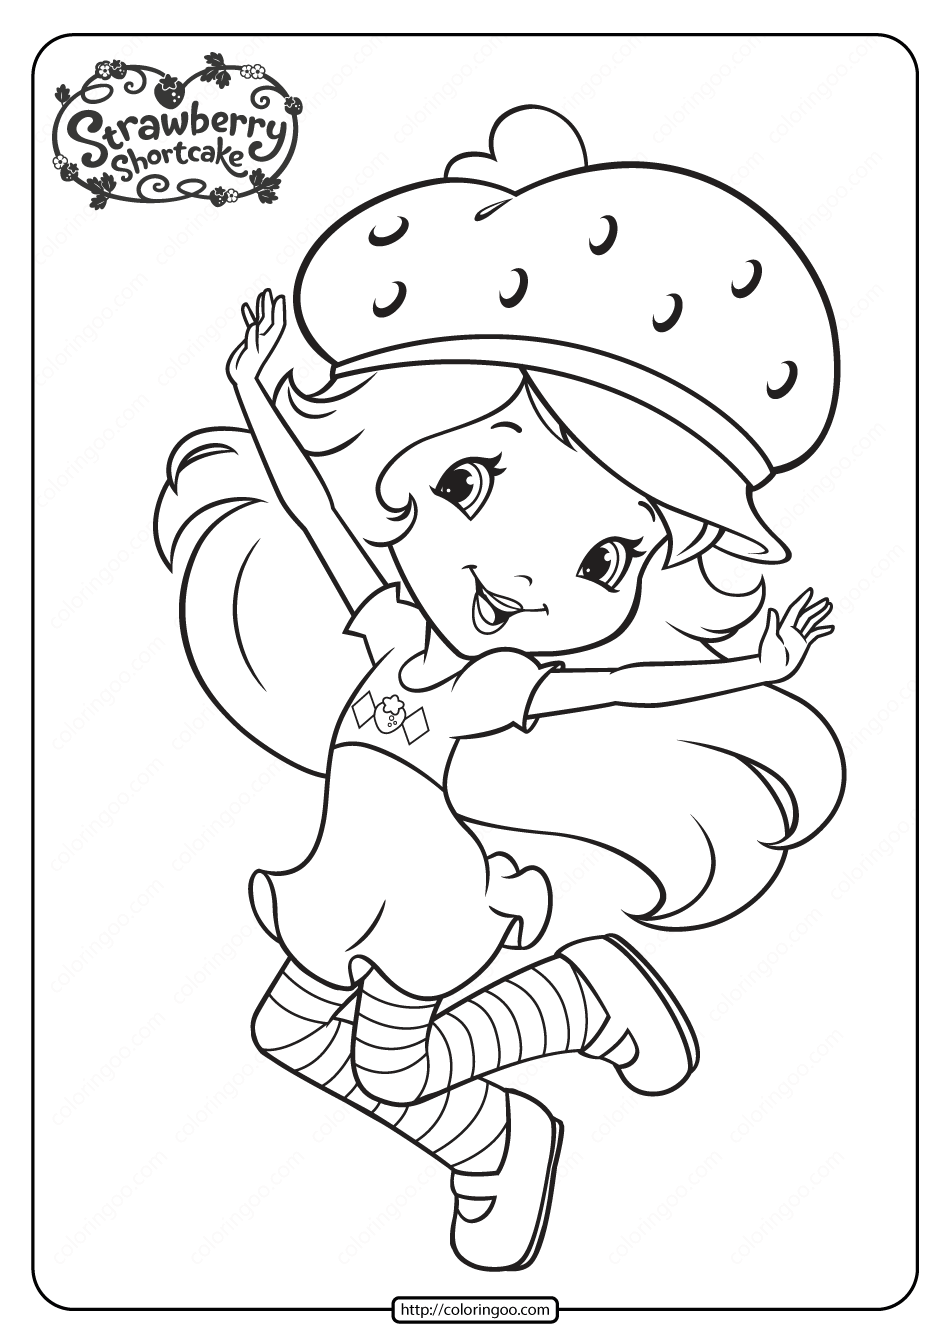 20+ Free Printable Strawberry Shortcake Coloring Pages ... | 1344x950